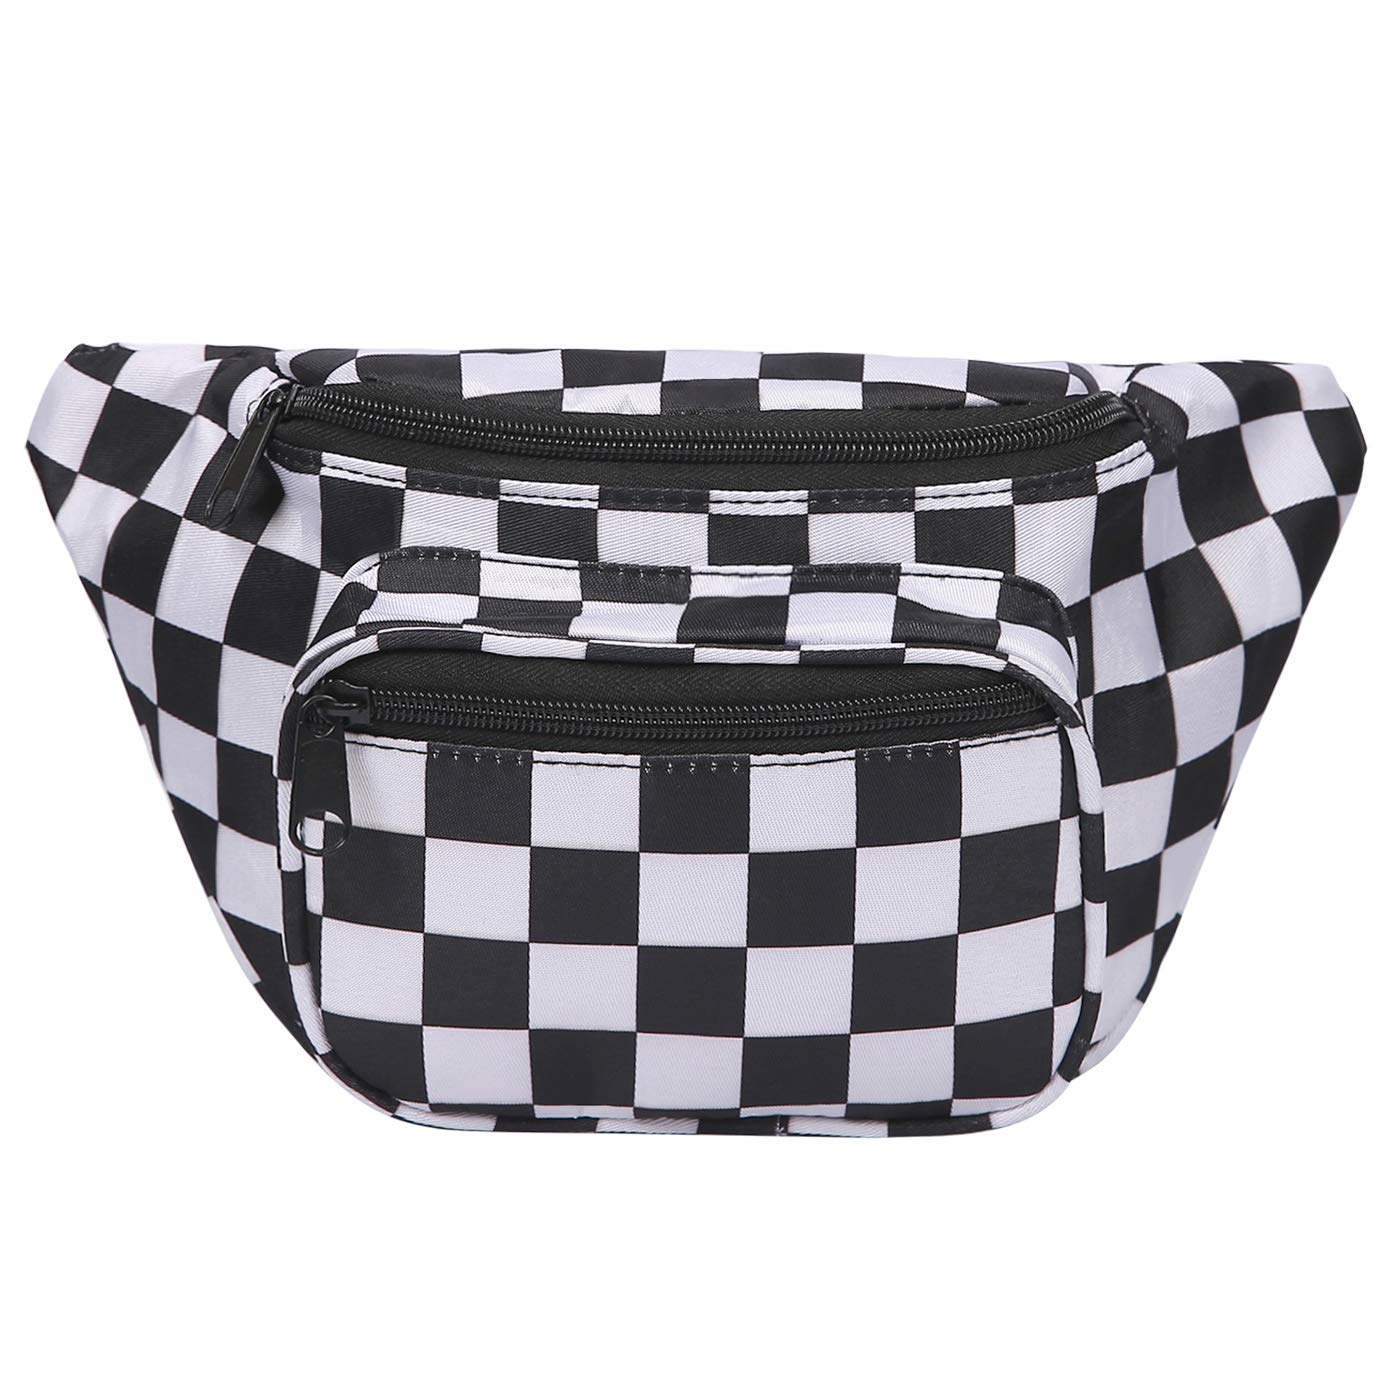 HDE Fanny Pack [80's Style] Waist Pack Outdoor Travel Crossbody Hip Bag (Black and White Checkered)